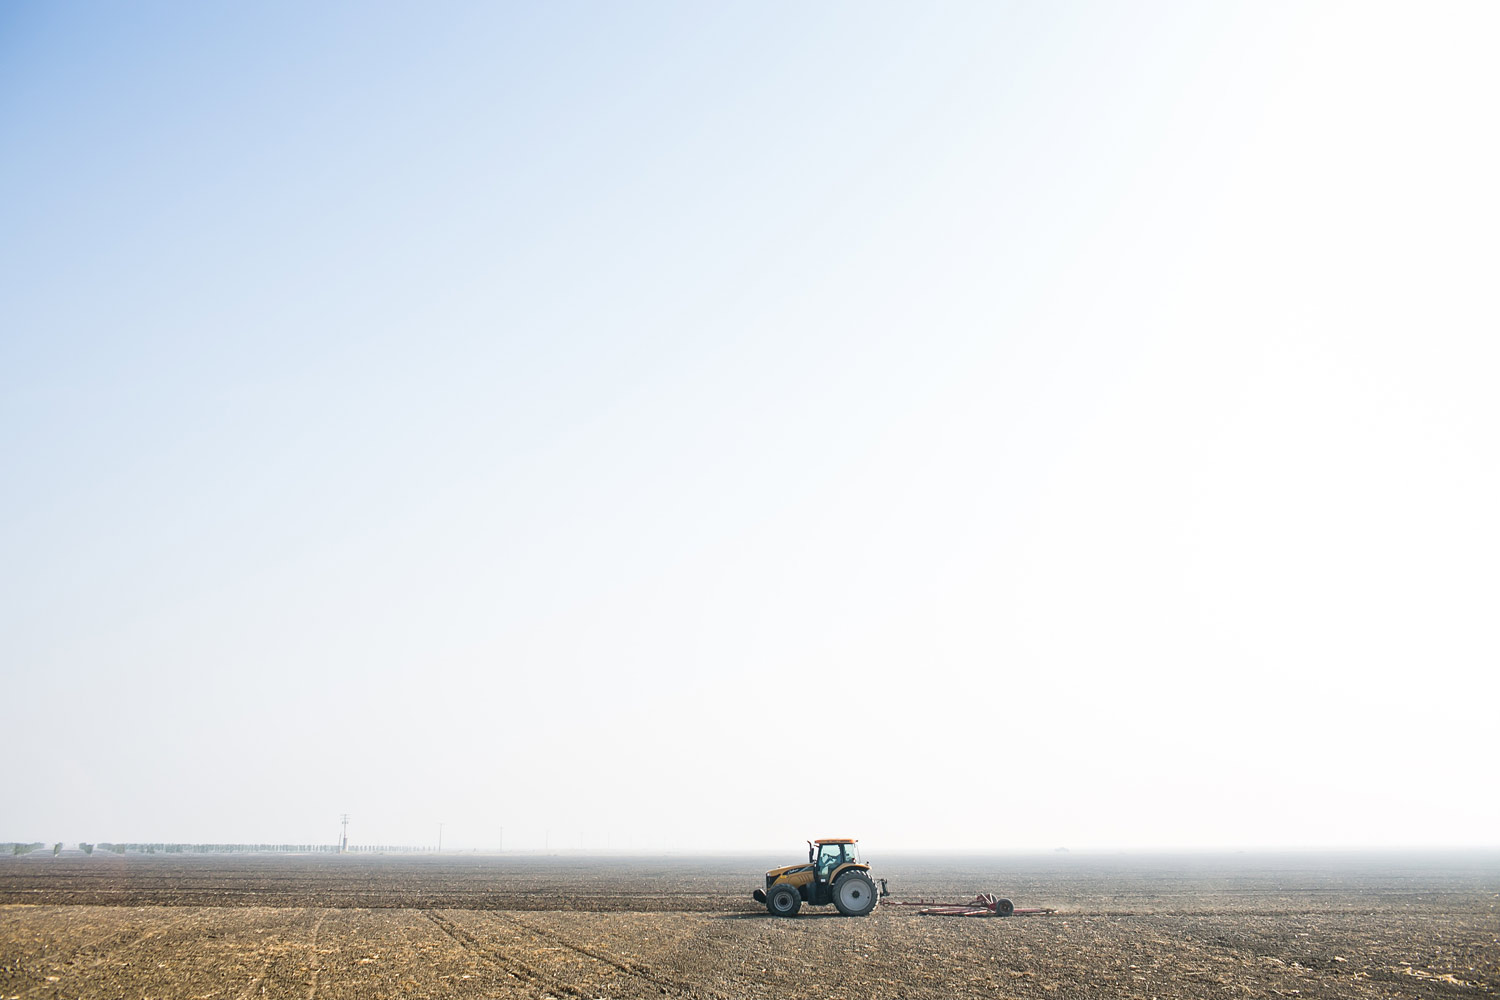 California's-Drought-Is-So-Bad-That-Some-Communities-Are-Trucking-In-Their-Water